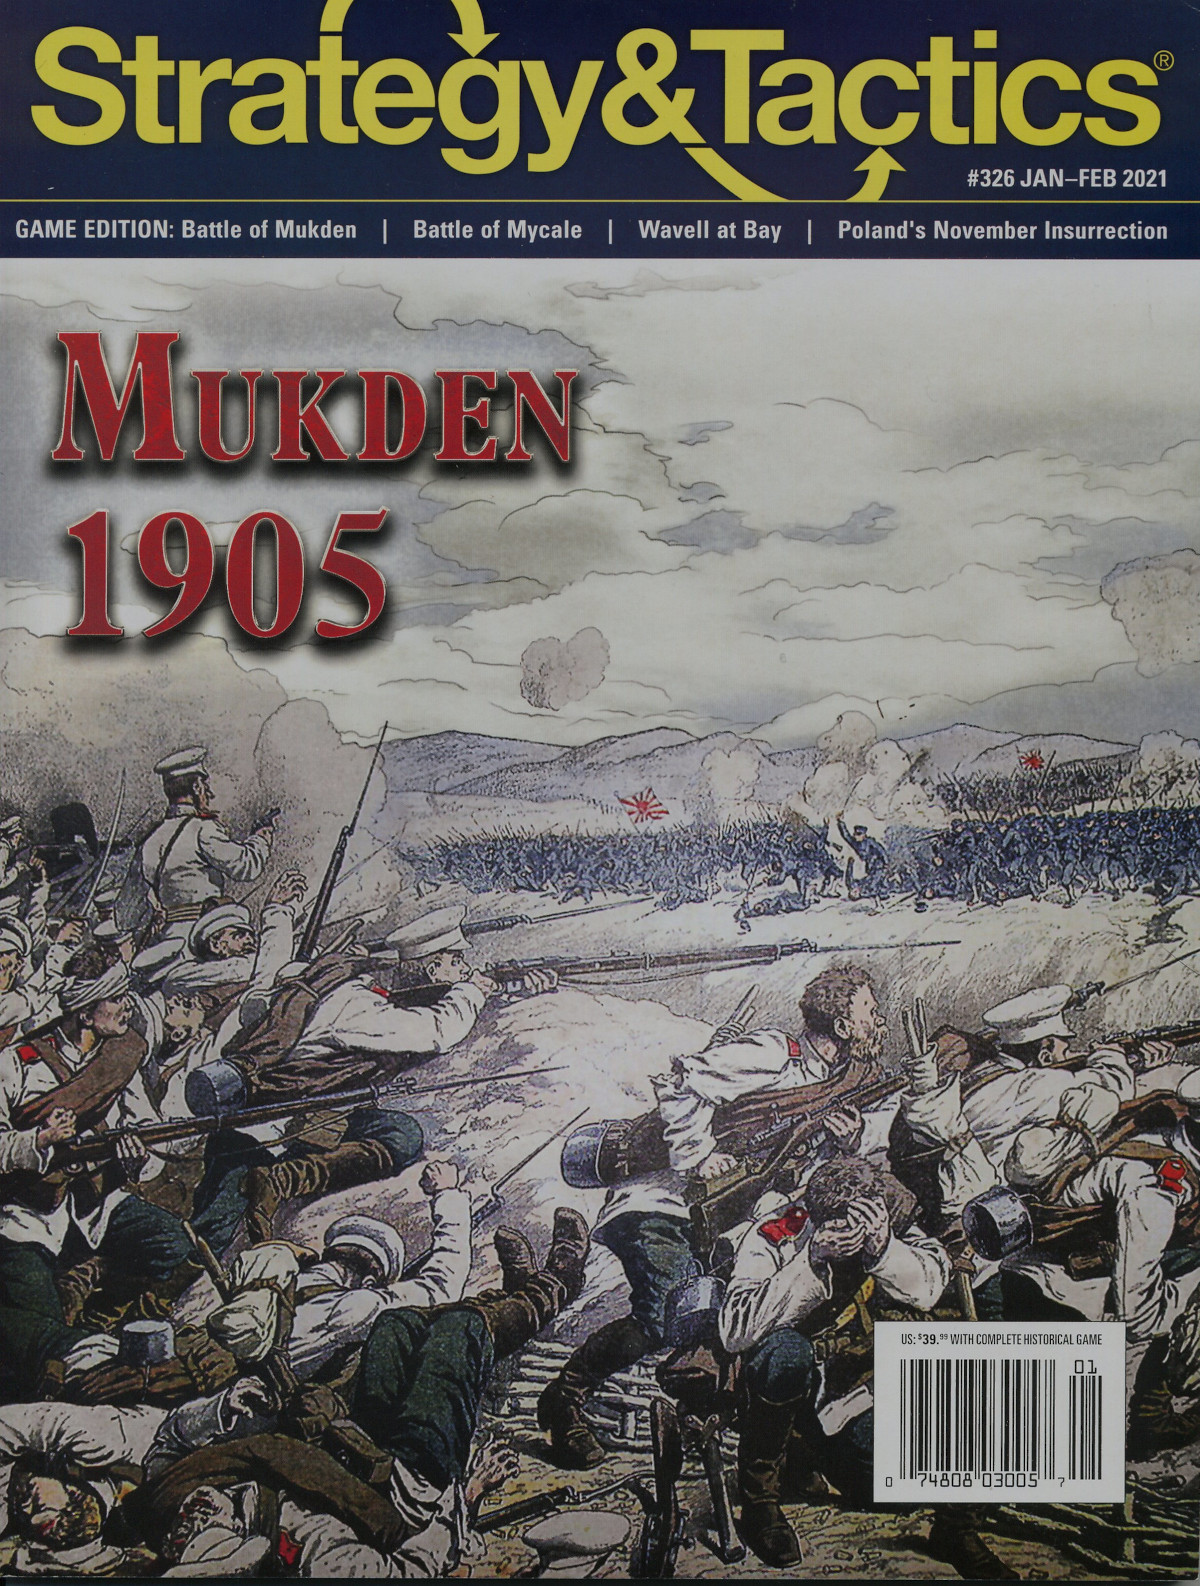 Strategy & Tactics - Game - 326 - Mukden - 1905